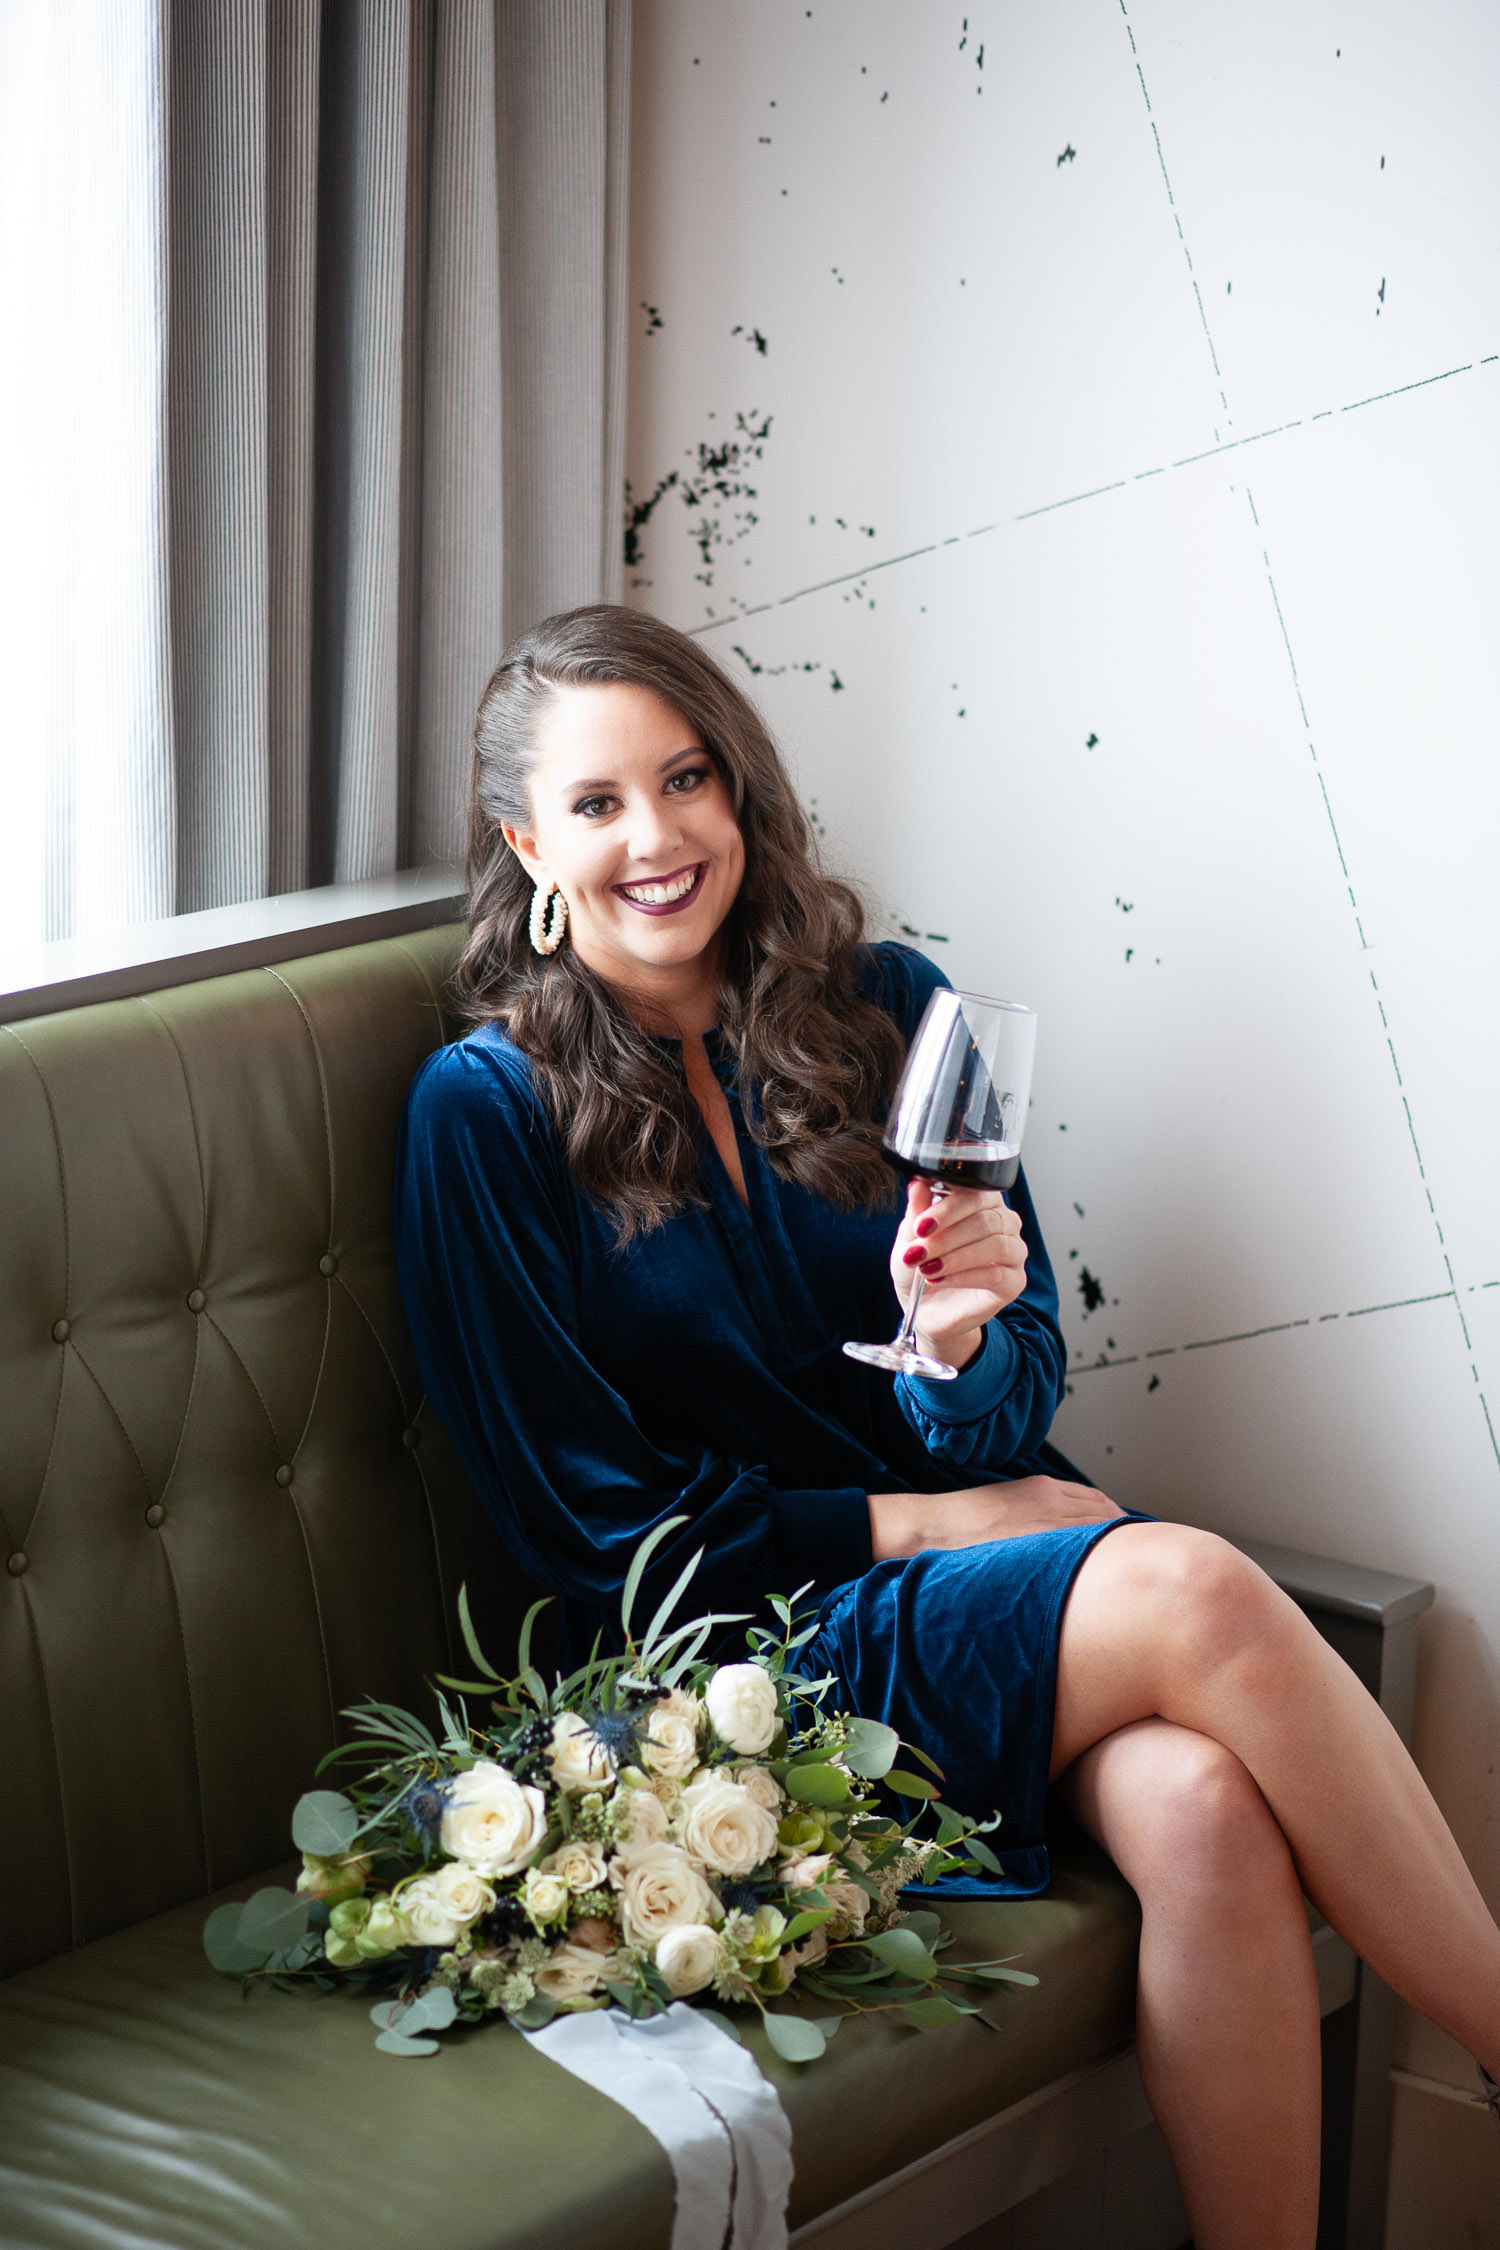 Evelyn from 206 Event Co. at The Nash captured by Calgary wedding photographer Tara Whittaker